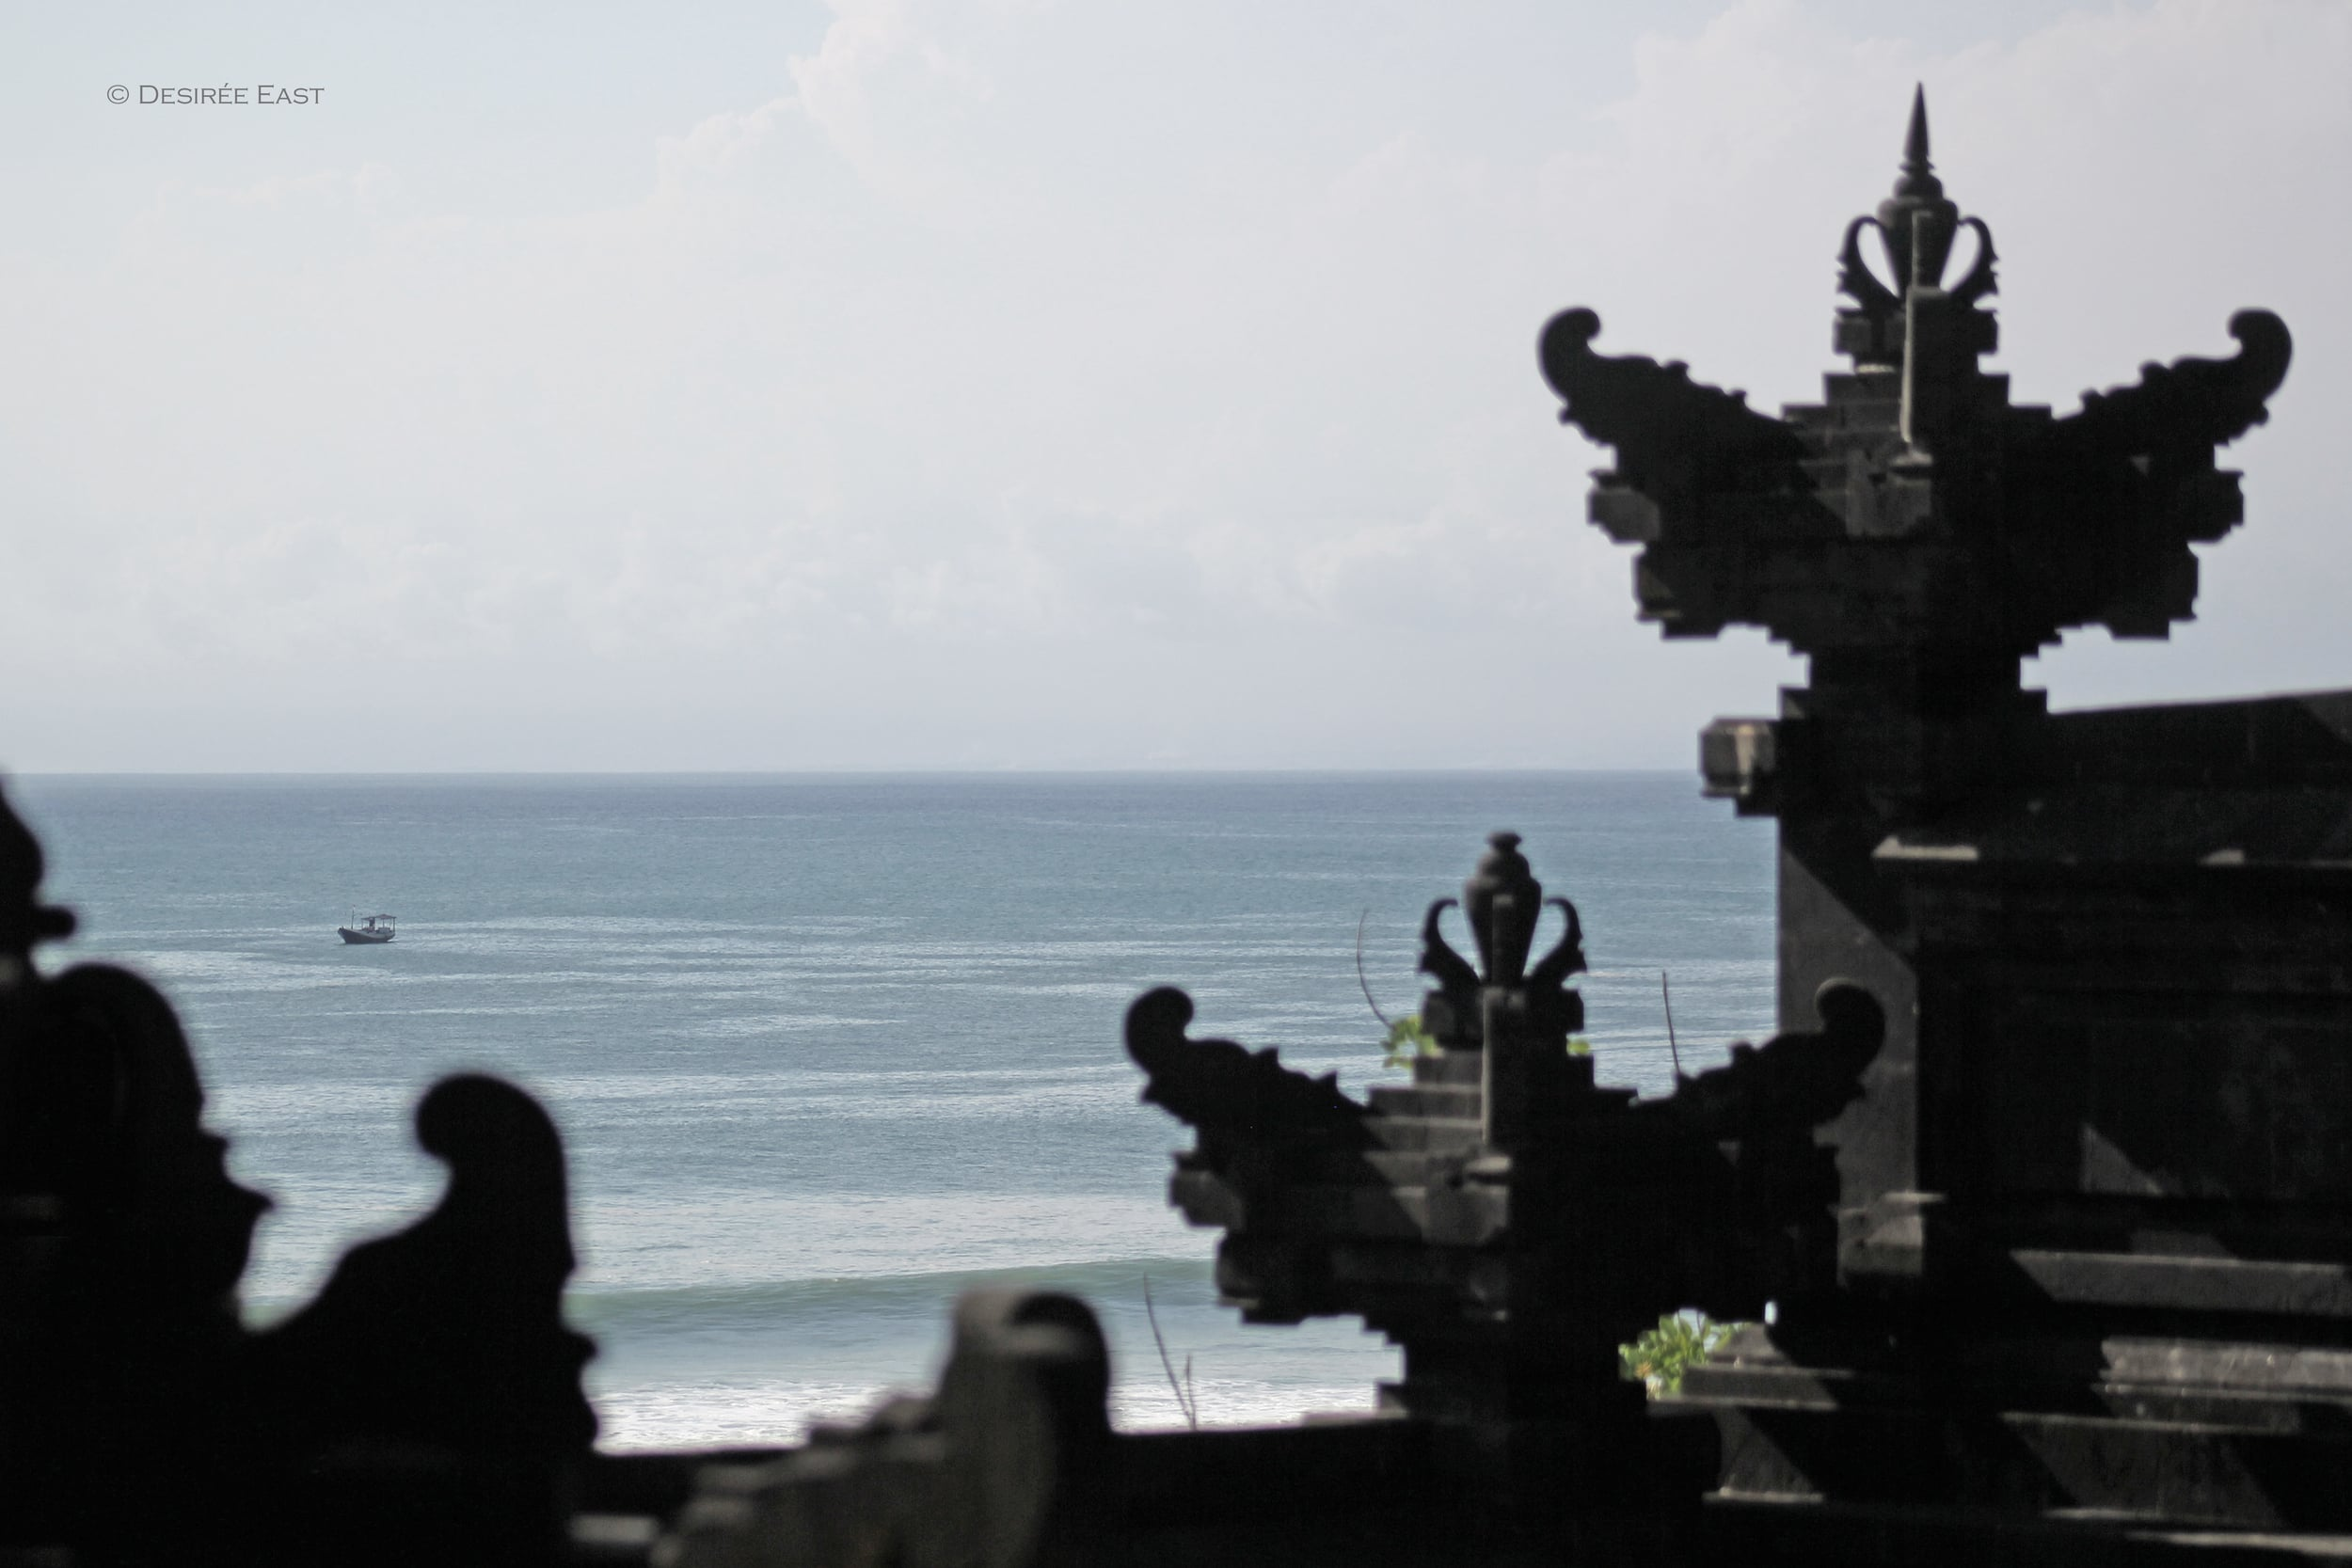 temple ocean view. bali, indonesia. photo by desiree east